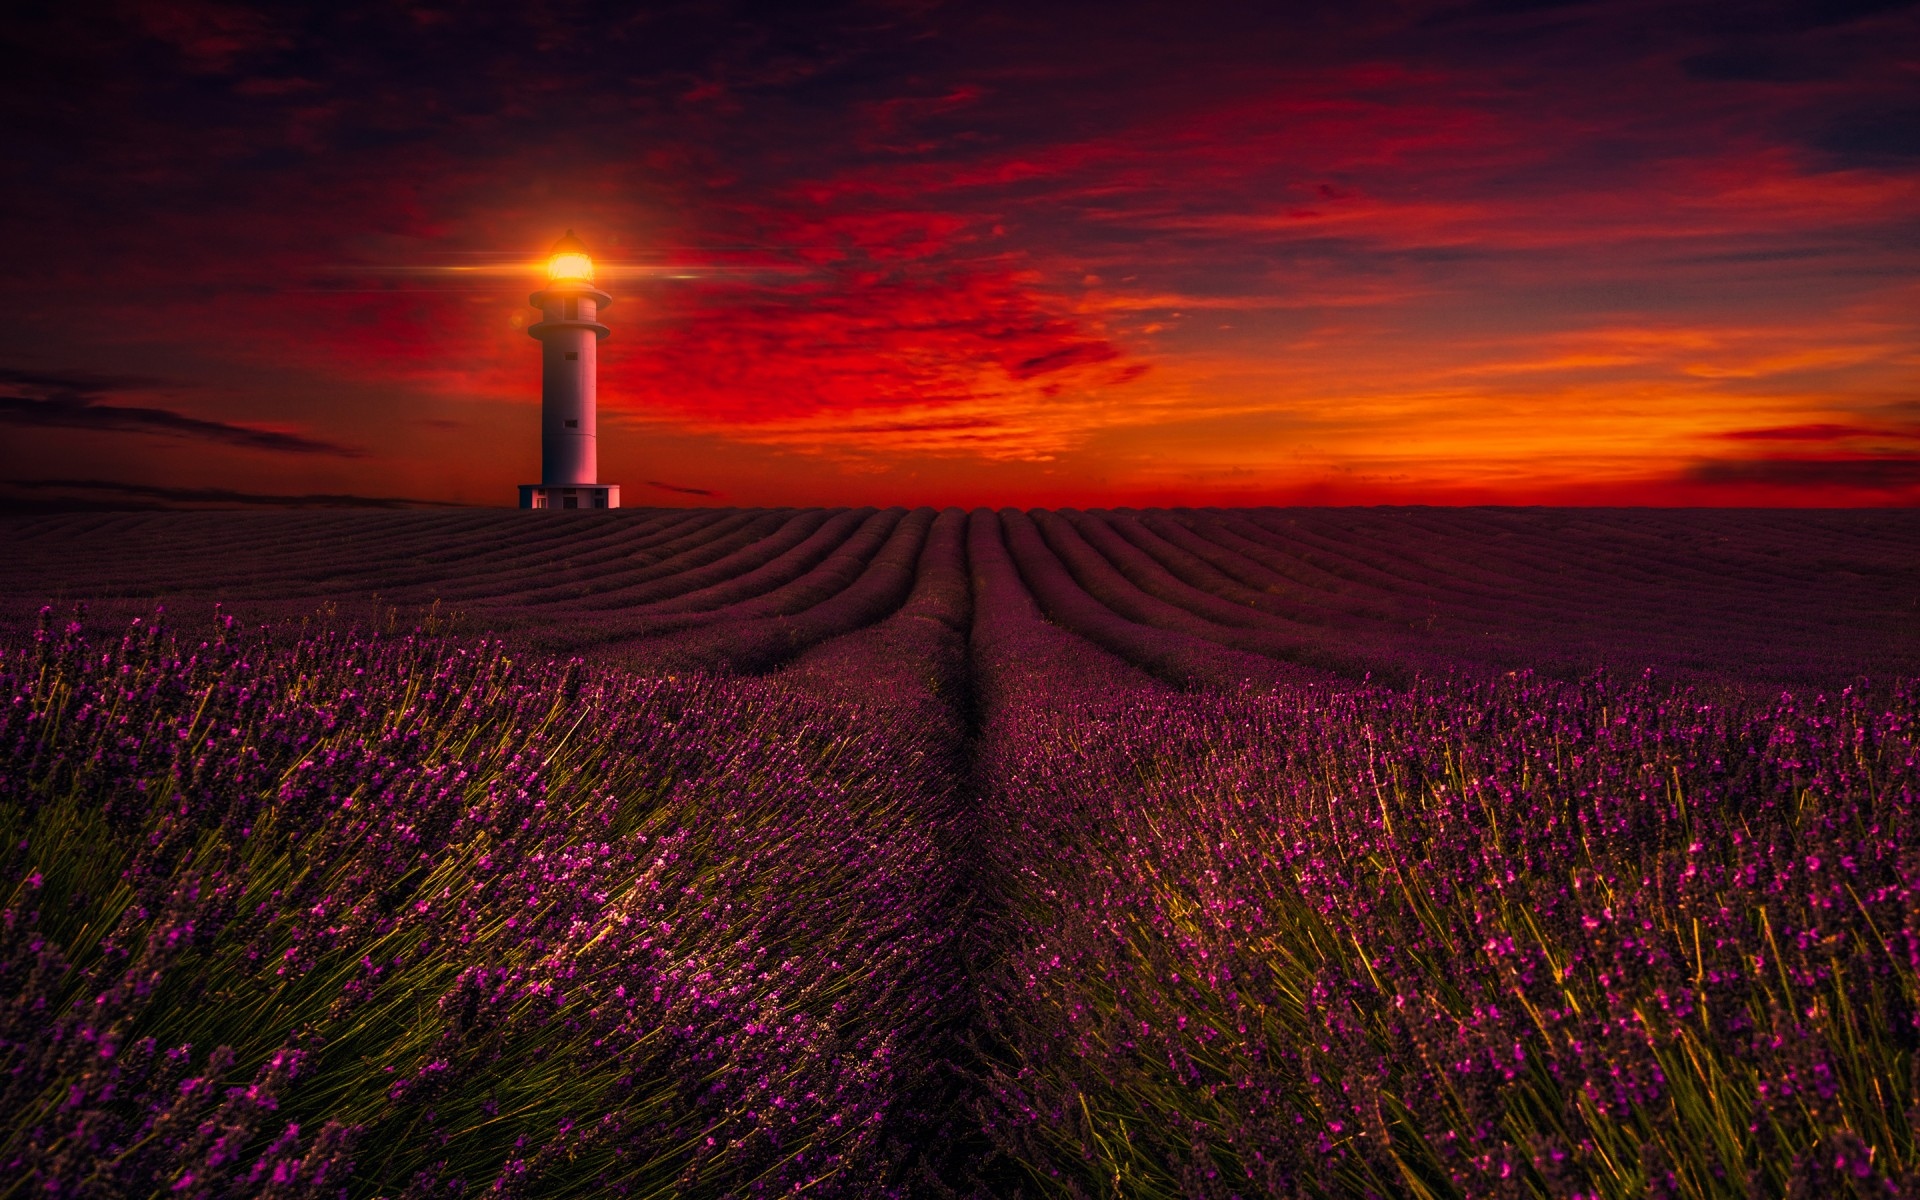 Apple Iphone 5s Wallpaper Hd Download Sunset Lavender Field Lighthouse 5k Wallpapers Hd